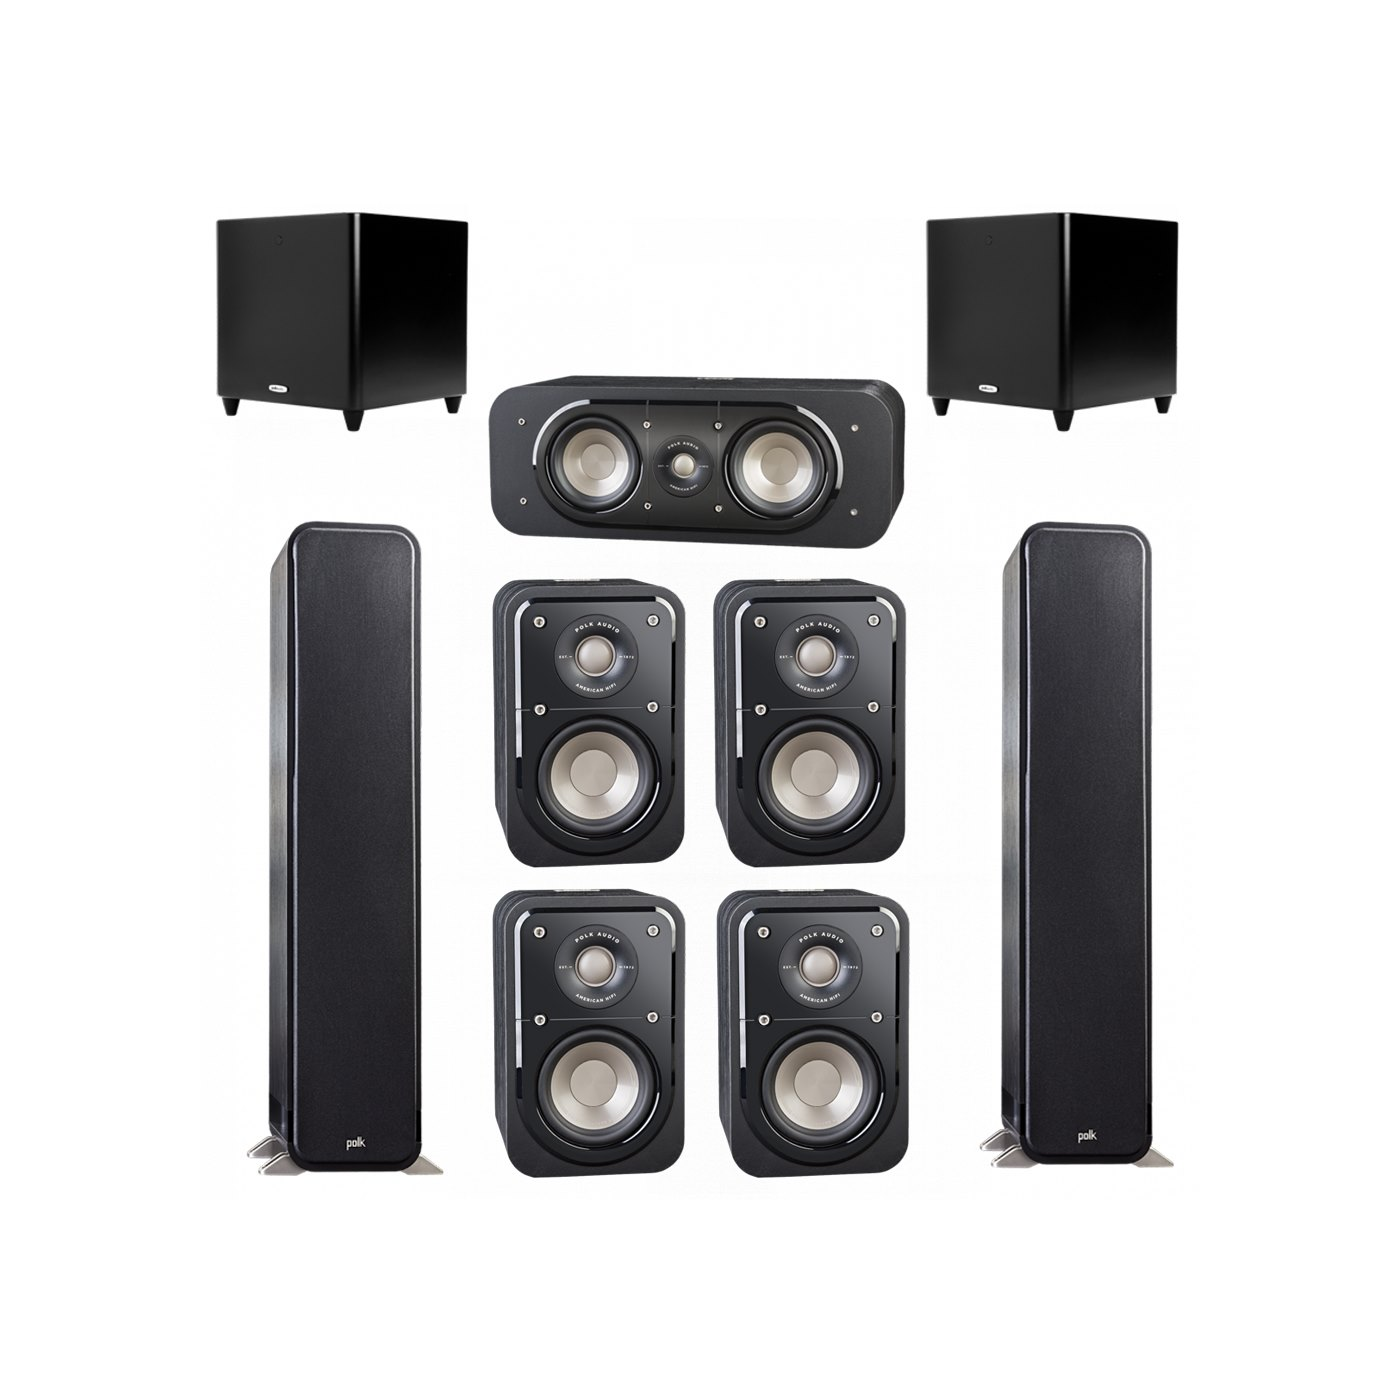 Polk Audio Signature 7.2 System with 2 S55 Tower Speaker, 1 Polk S30 Center Speaker, 4 Polk S10 Bookshelf Speaker, 2 Polk DSW PRO 660 wi Subwoofer